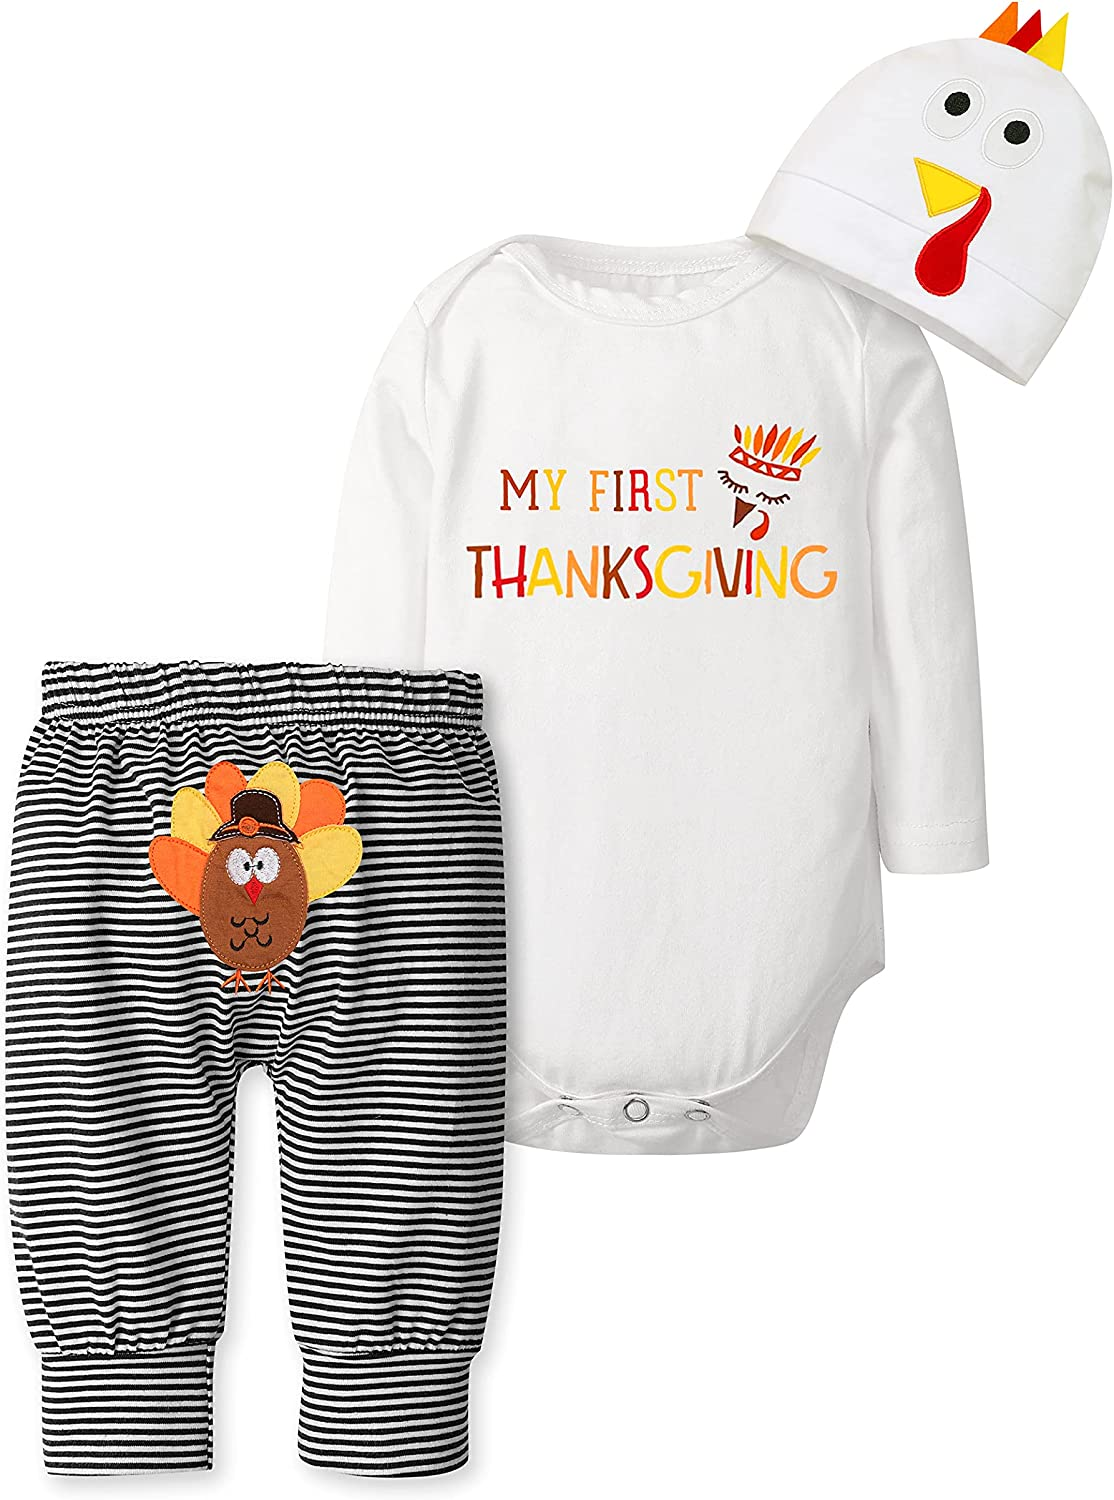 Baby Boy Thanksgiving Outfit My First Thanksgiving Clothes Turkey Bodysuit Romper + Pants 3Pcs Sets 3-6 Months